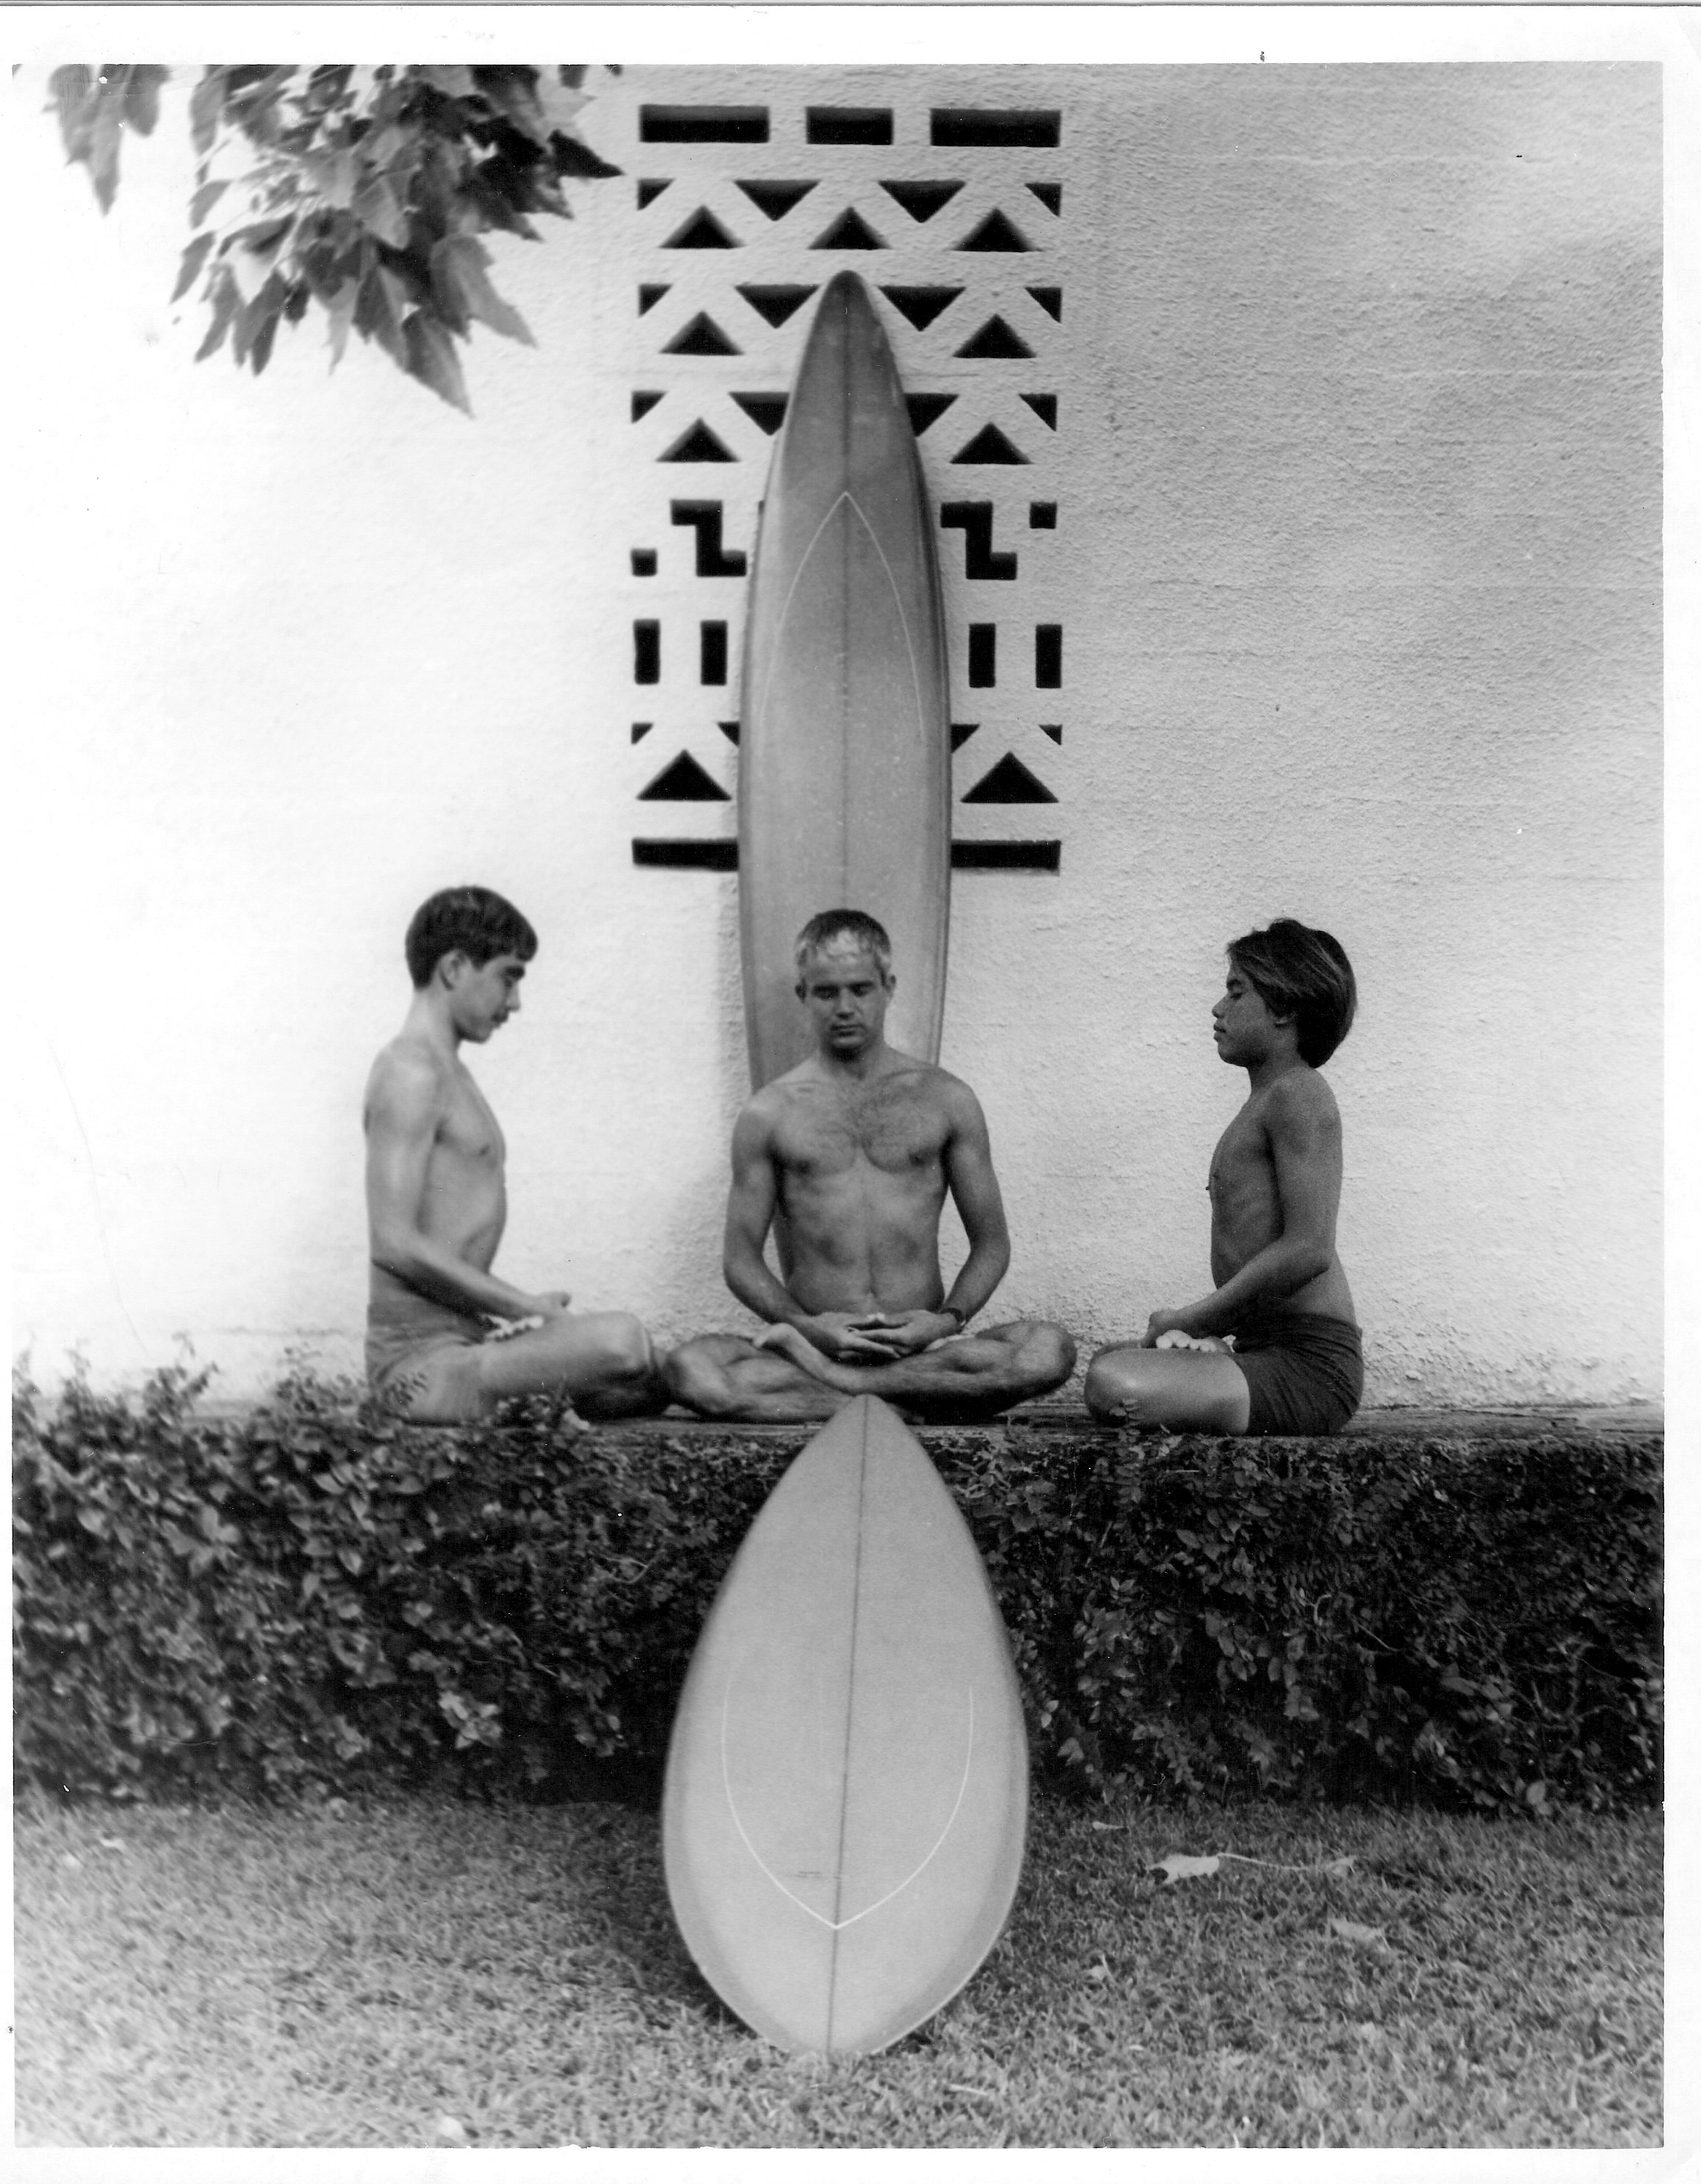 Chasing the Lotus. Gerry Lopez on left. Circa 1969. Photo: David Darling